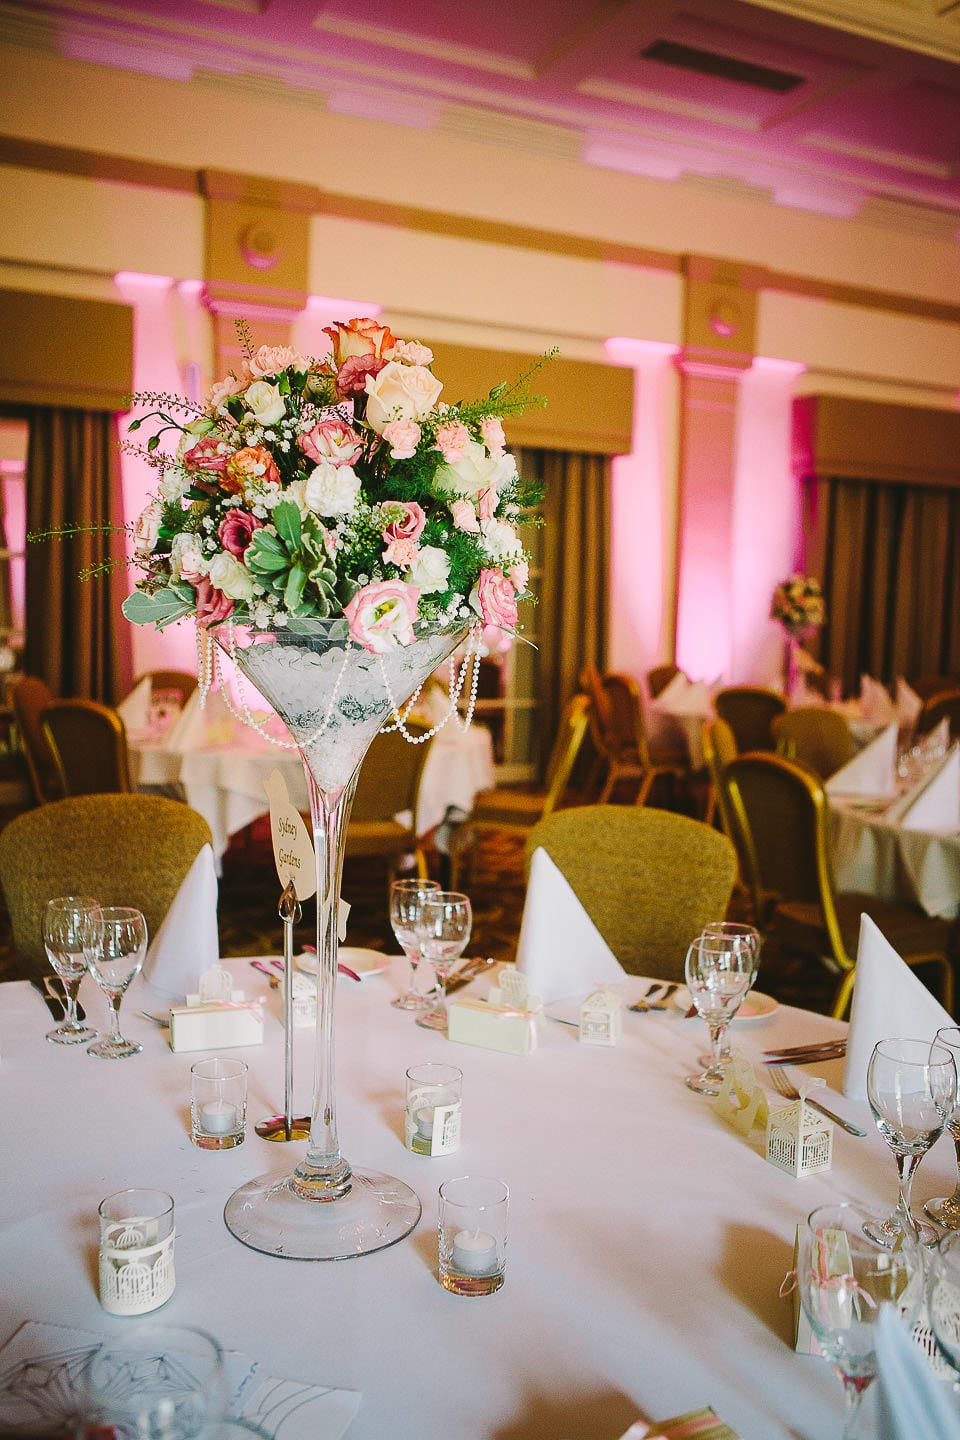 Tall table decoration for wedding breakfast at Bath Spa Hotel